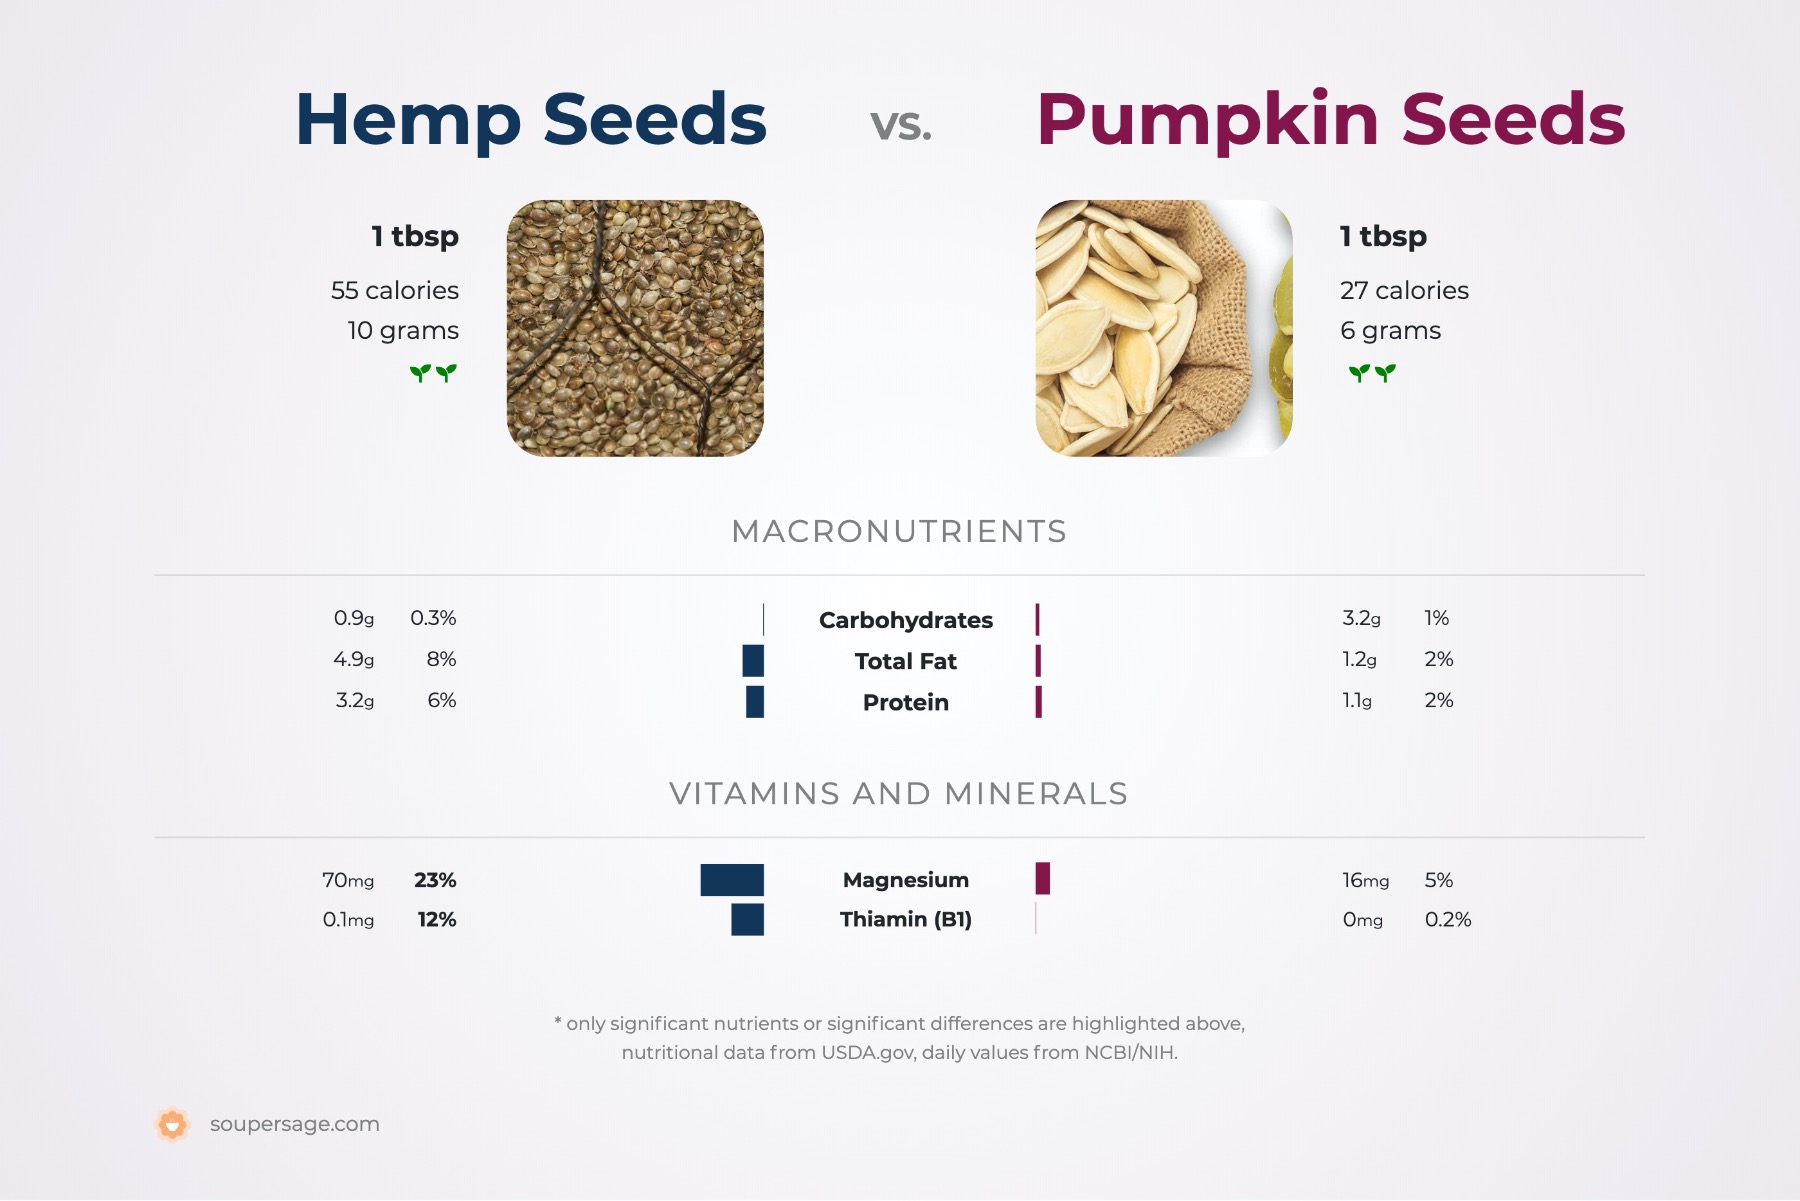 nutrition comparison of hemp seeds vs. pumpkin seeds